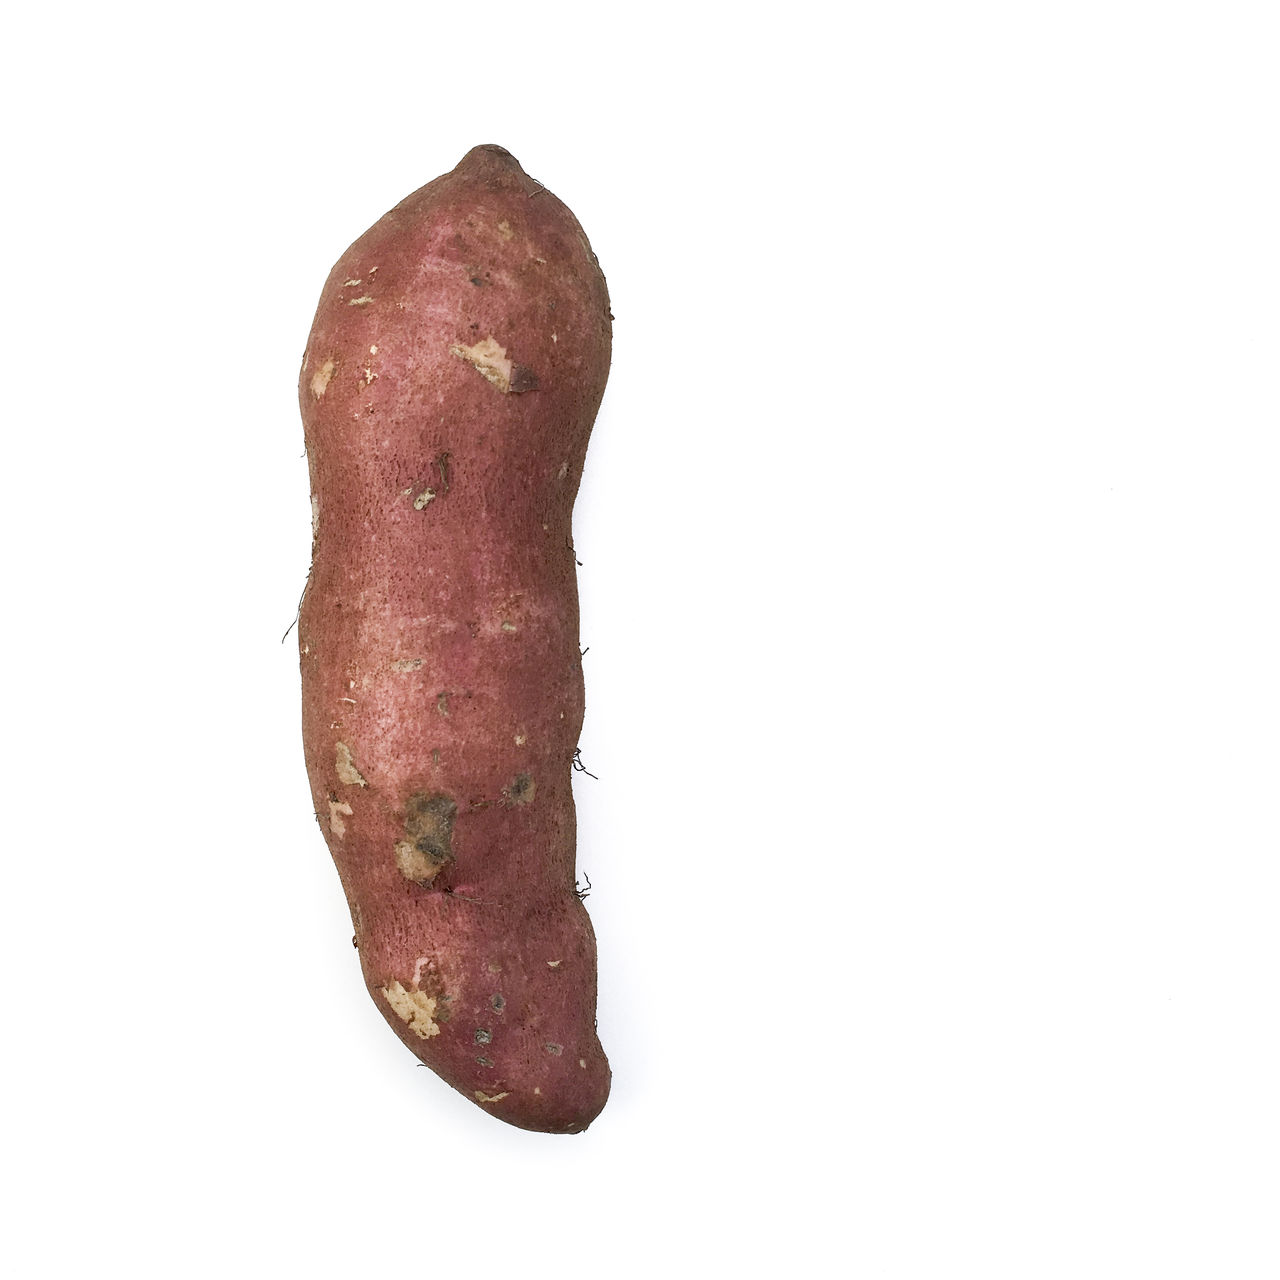 Sweet Potato Close-up Copy Space Copy Space Cut Out Food Food And Drink Freshness Healthy Eating Red Root Single Object Skin Still Life Studio Shot Sweet Potato Sweet Potatoes Vegetable White Background